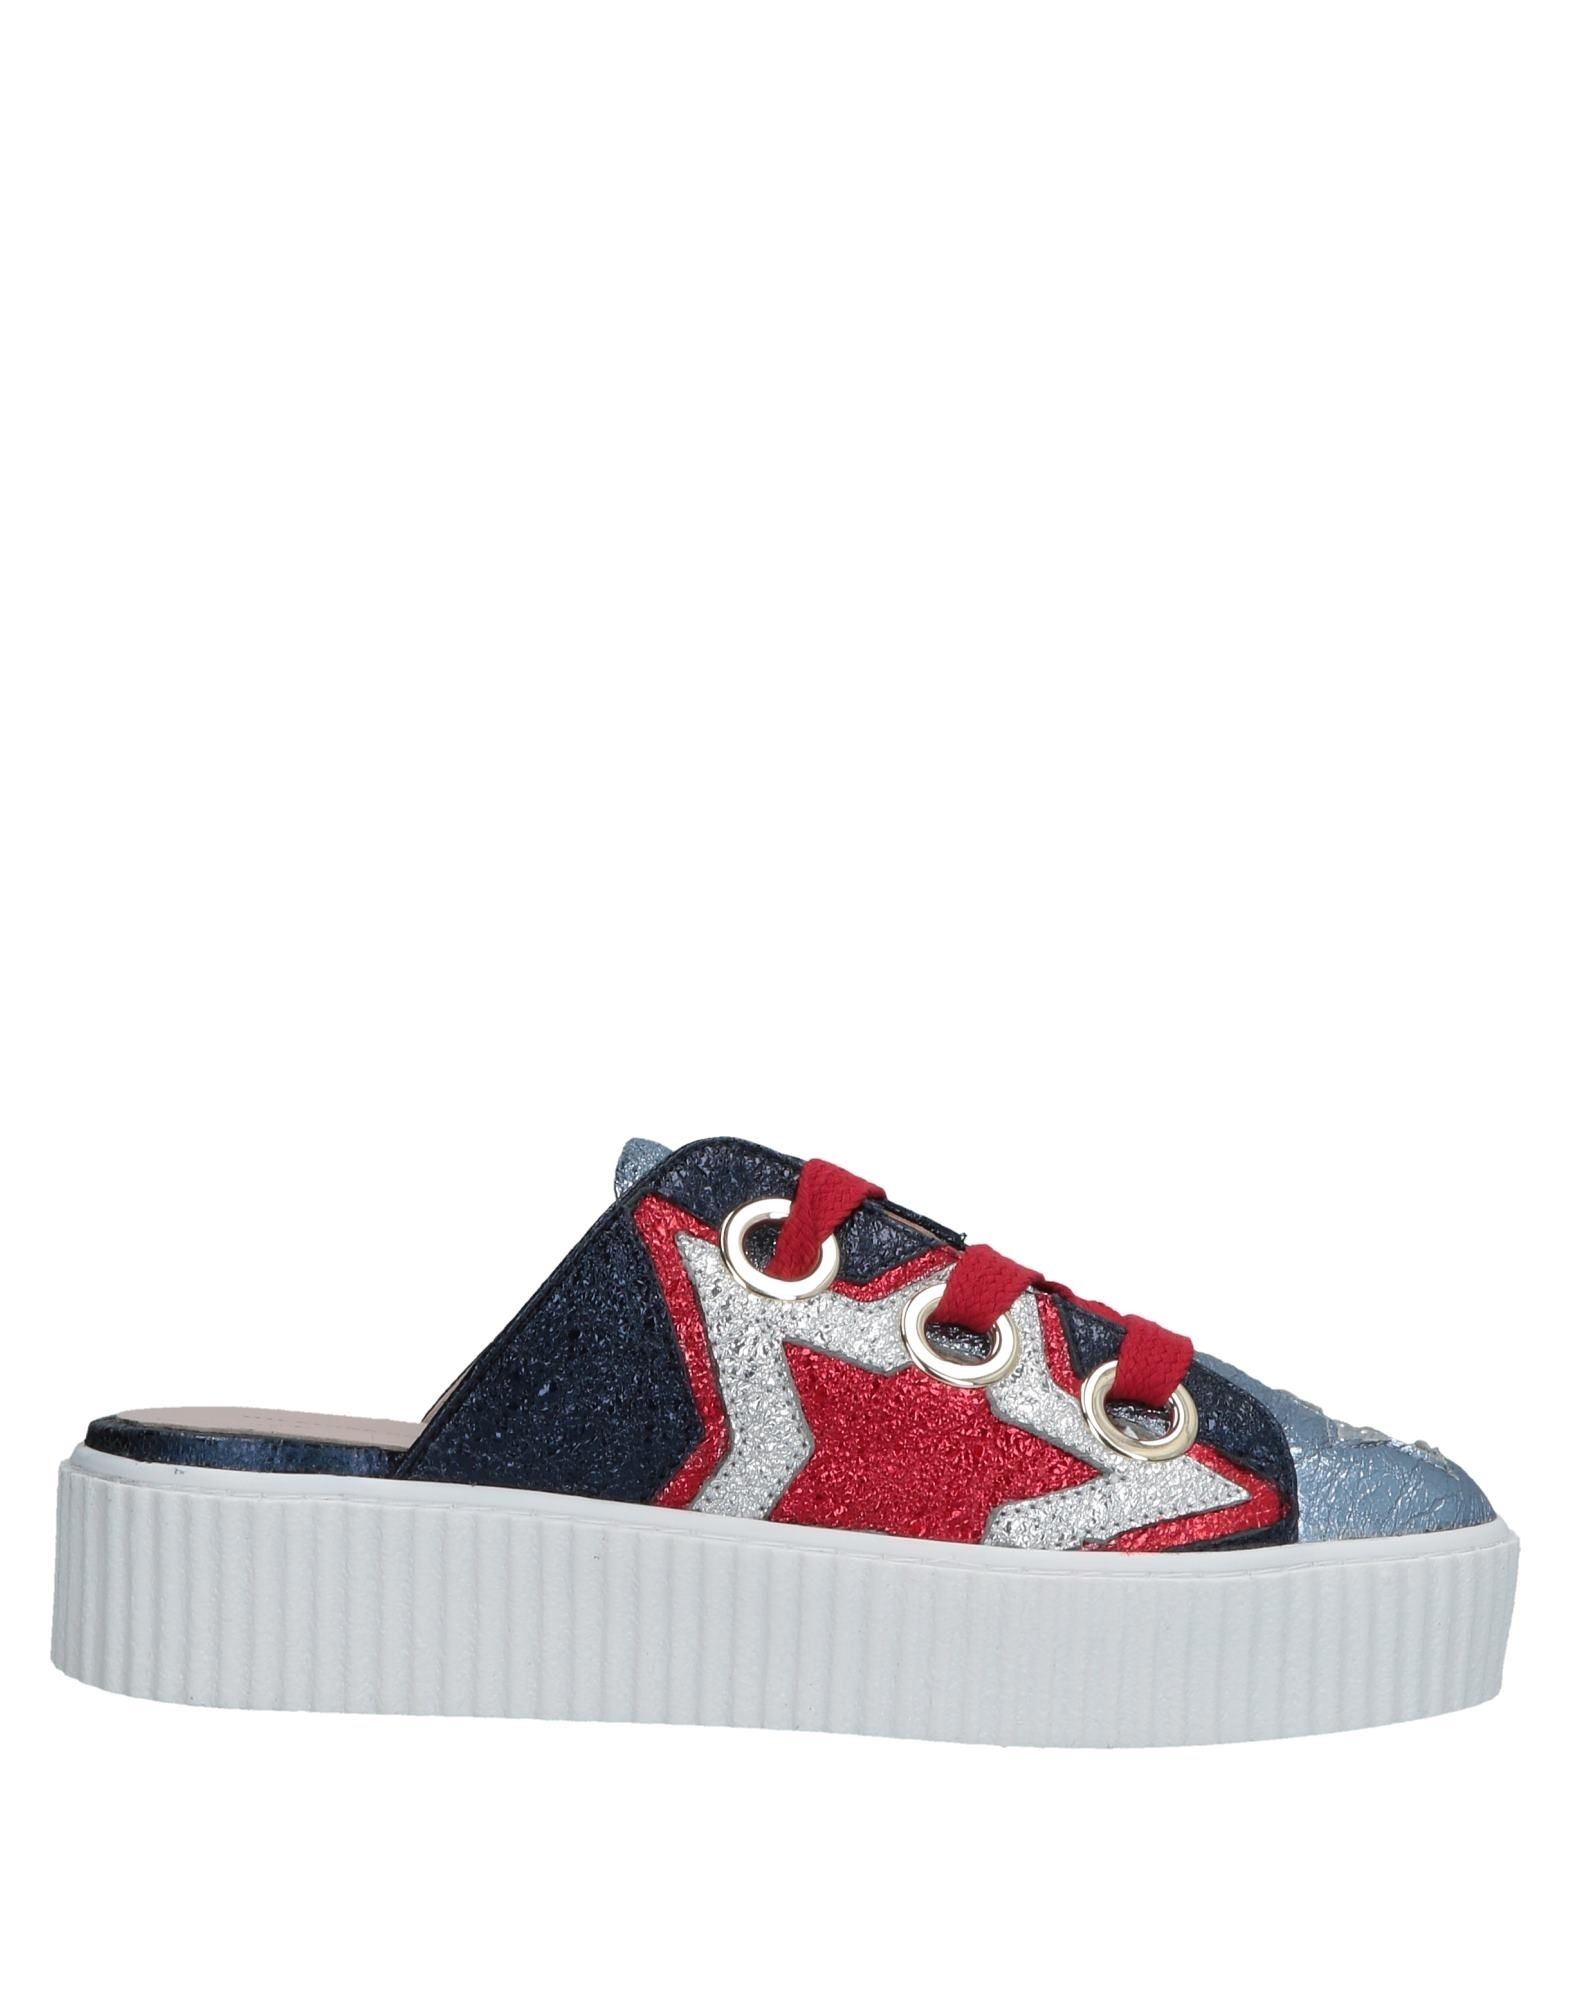 Hilfiger Collection Open-Toe Mules - Women Hilfiger Collection Open-Toe United Mules online on  United Open-Toe Kingdom - 11570749TO 167539